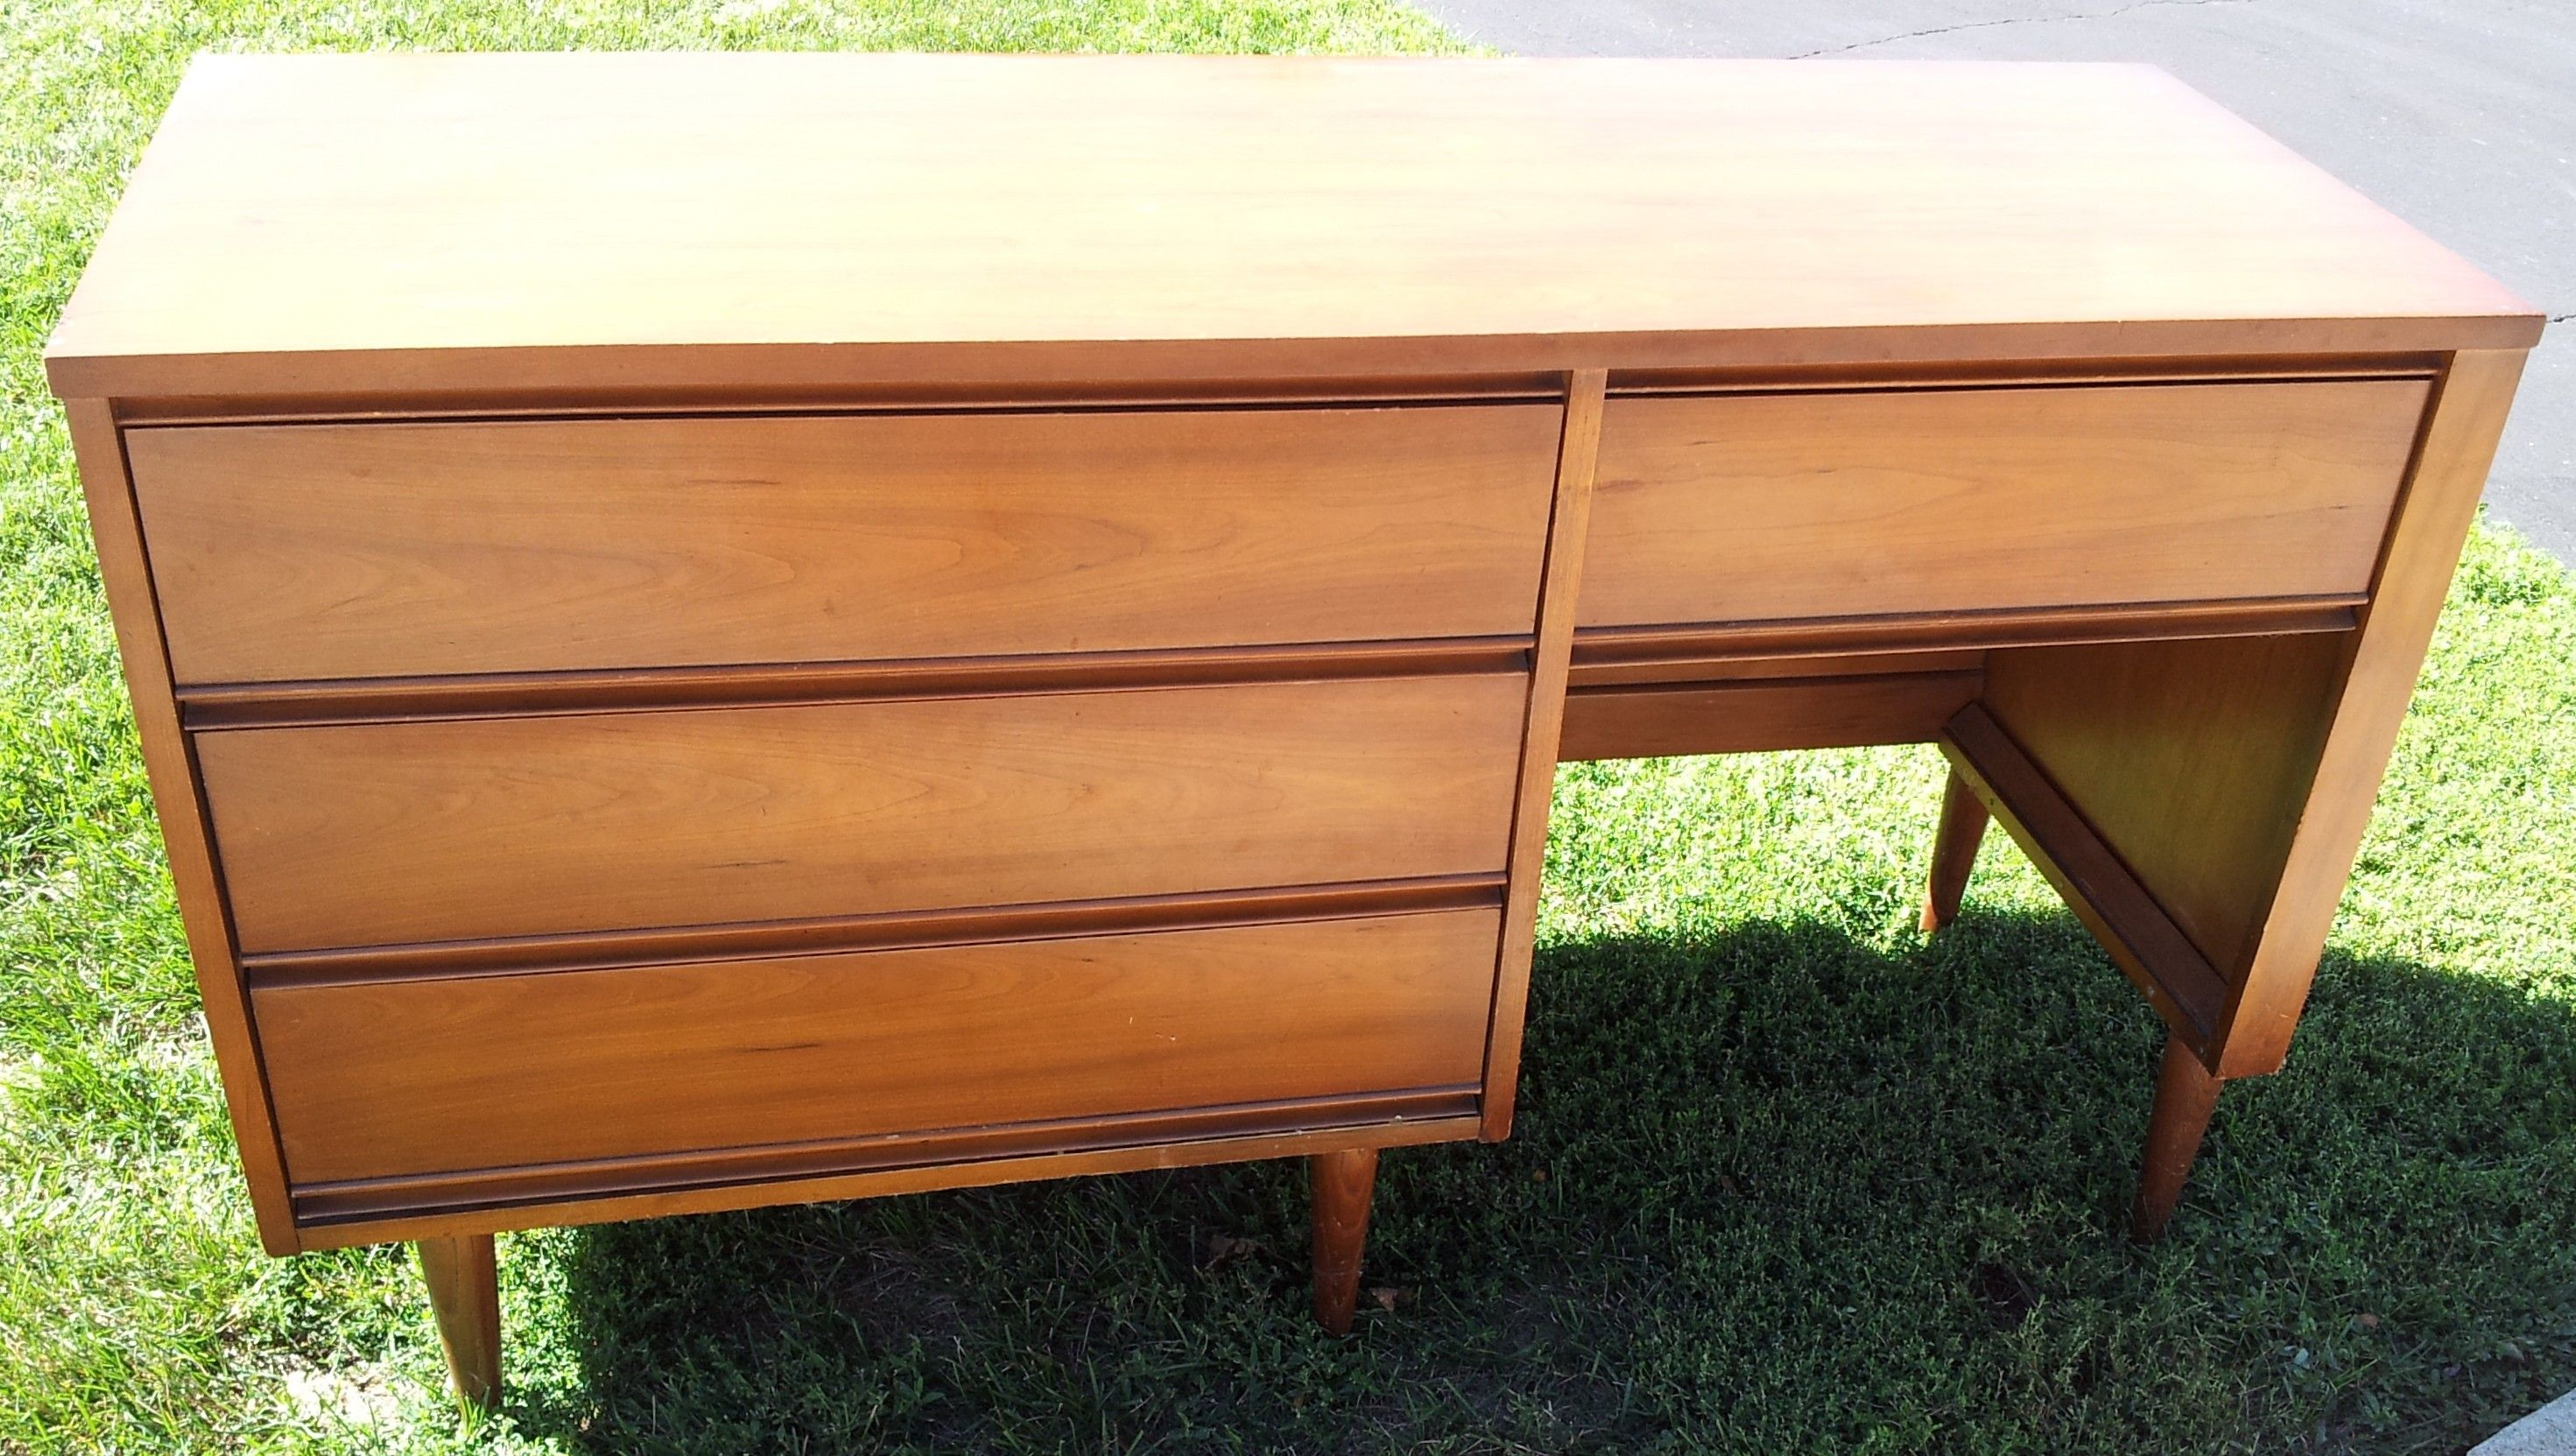 Mid Century Dresser / Credenza / Desk $350 - Chicago  http://furnishly.com/catalog/product/view/id/1411/s/mid-century-dresser-credenza-desk/